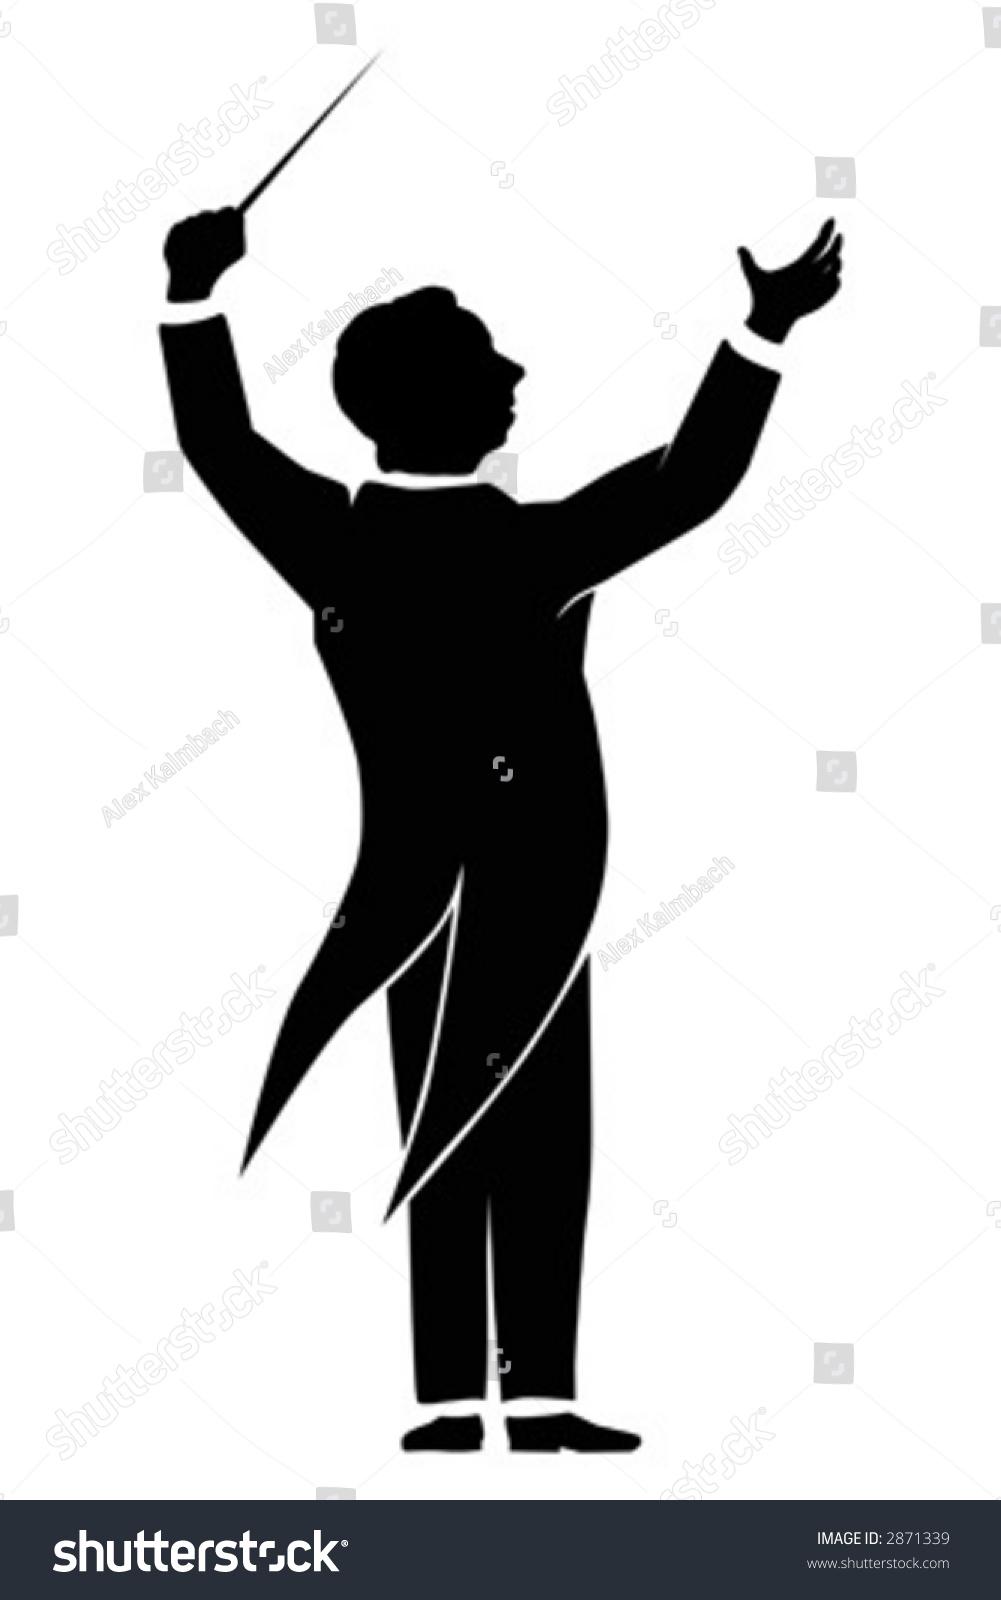 Orchestra Conductor Stock Vector 2871339 Shutterstock